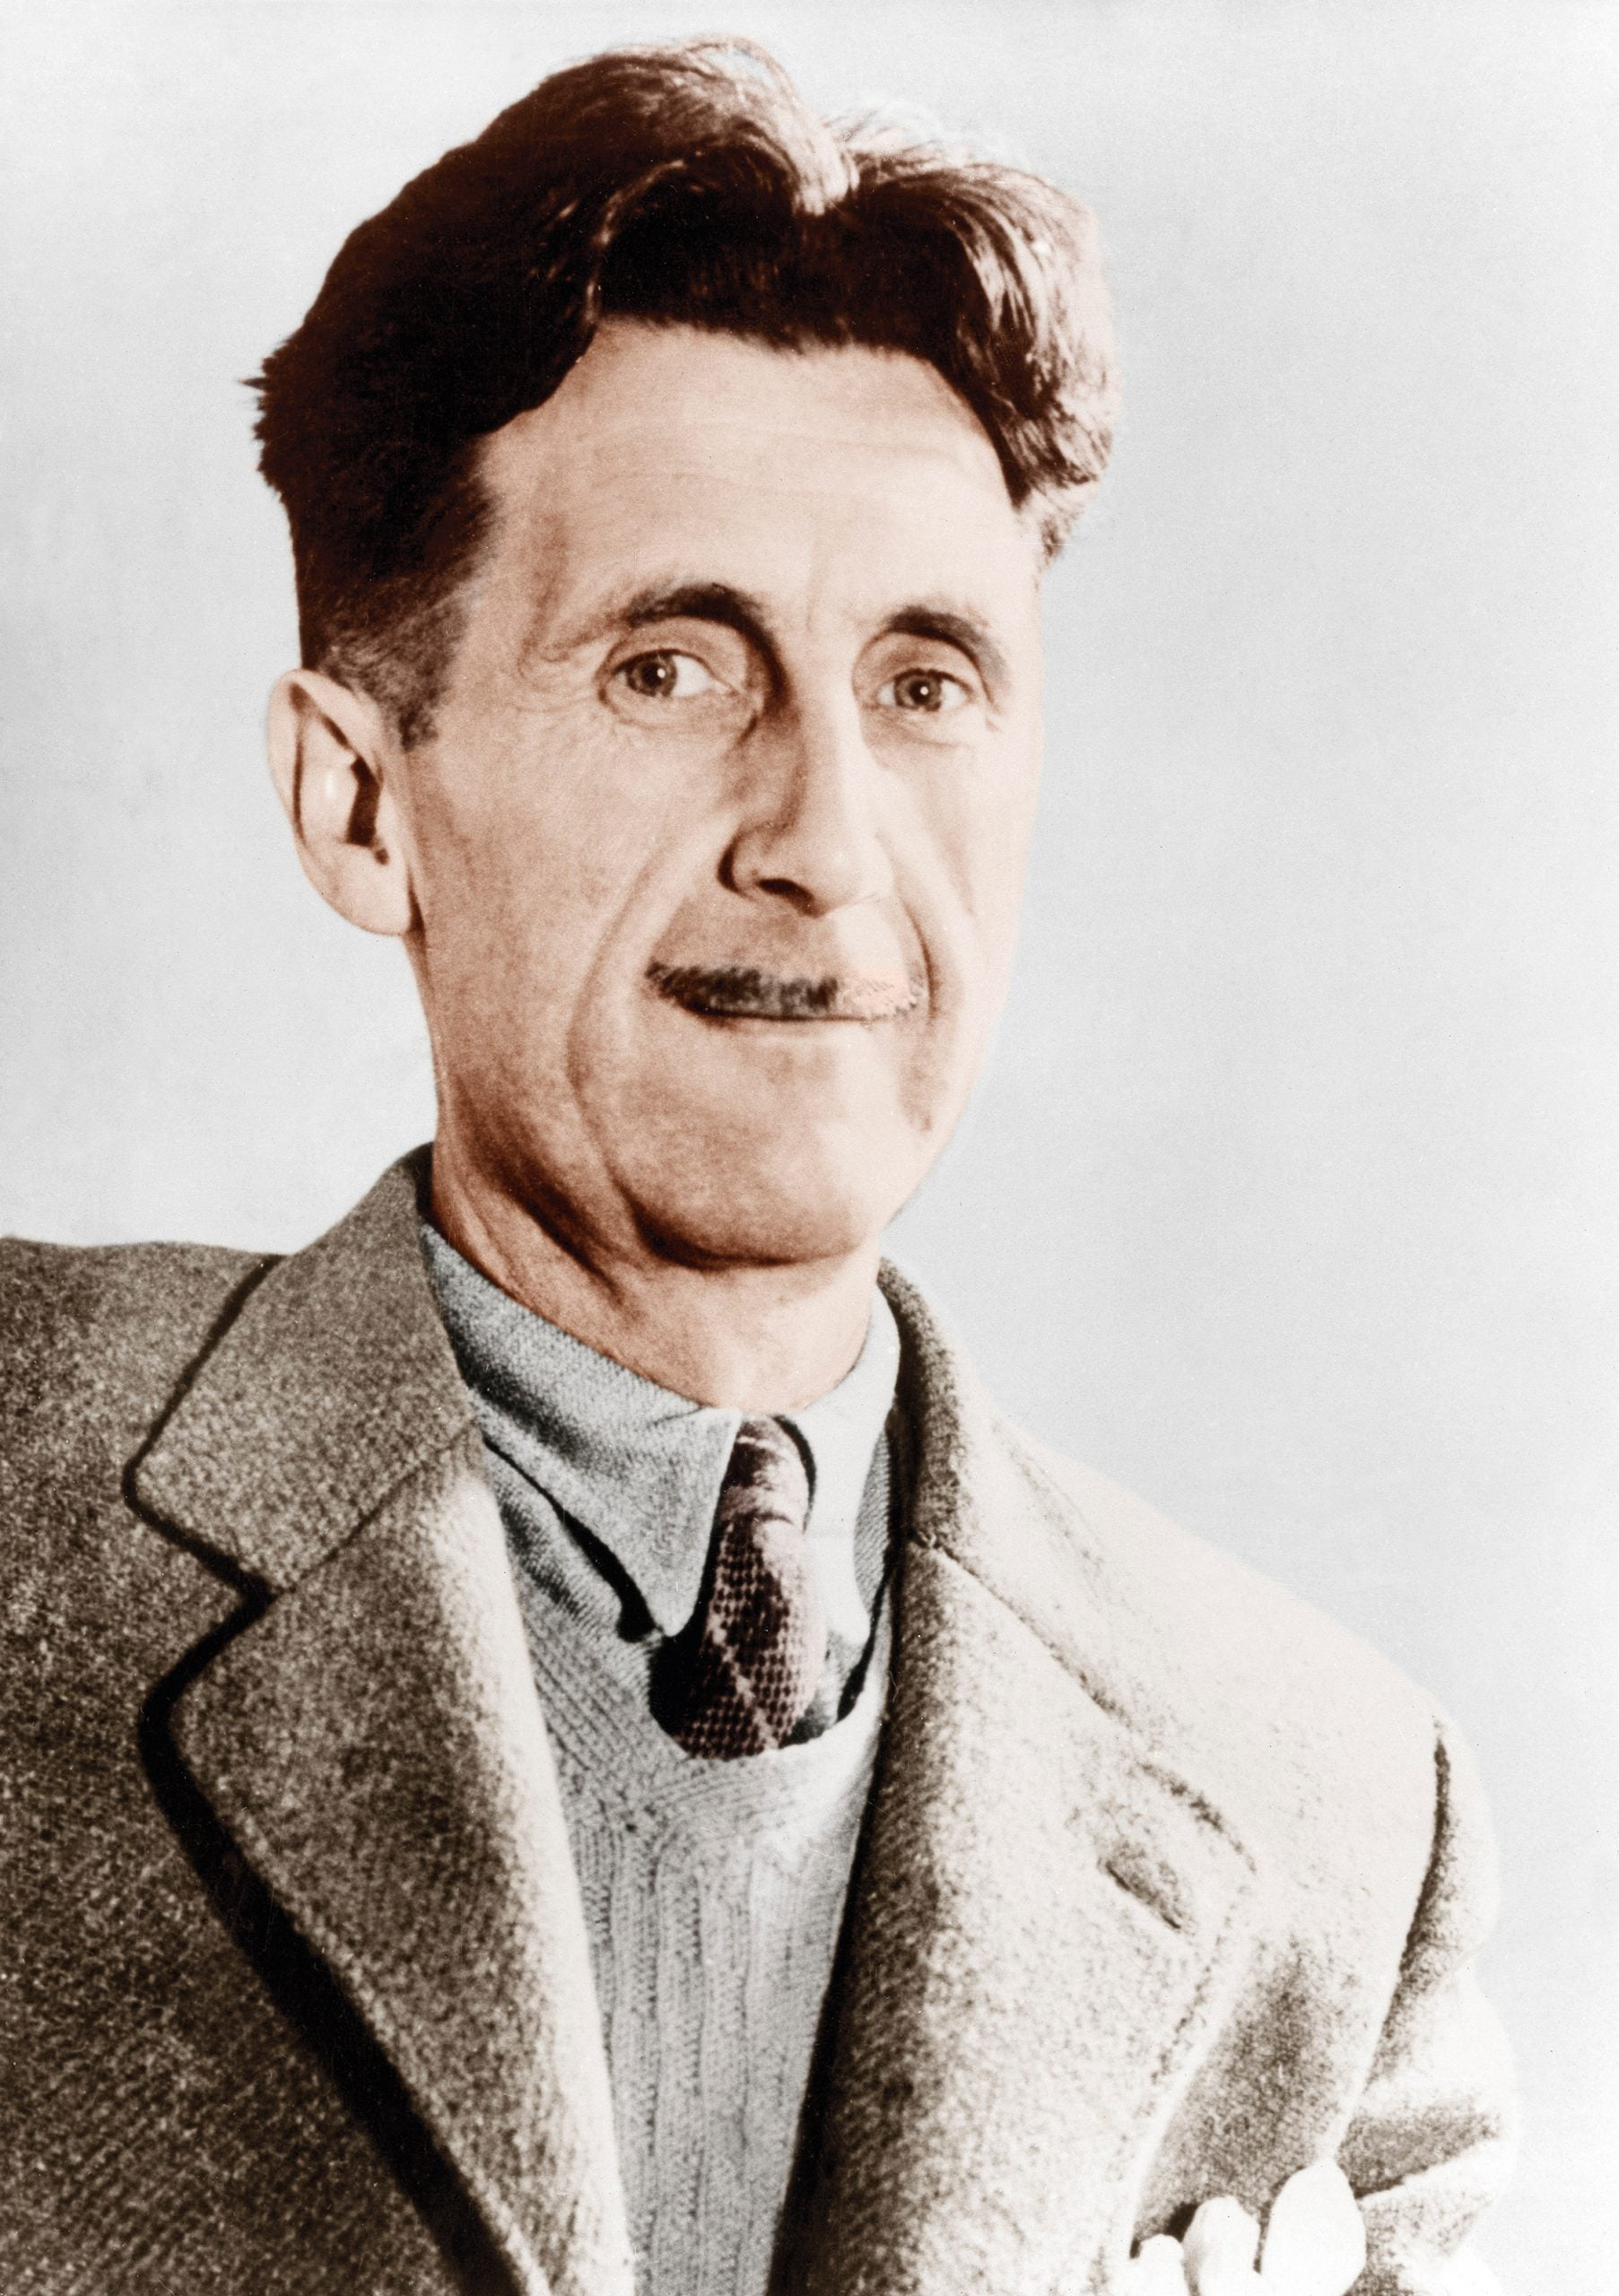 George Orwell and the road to revolution